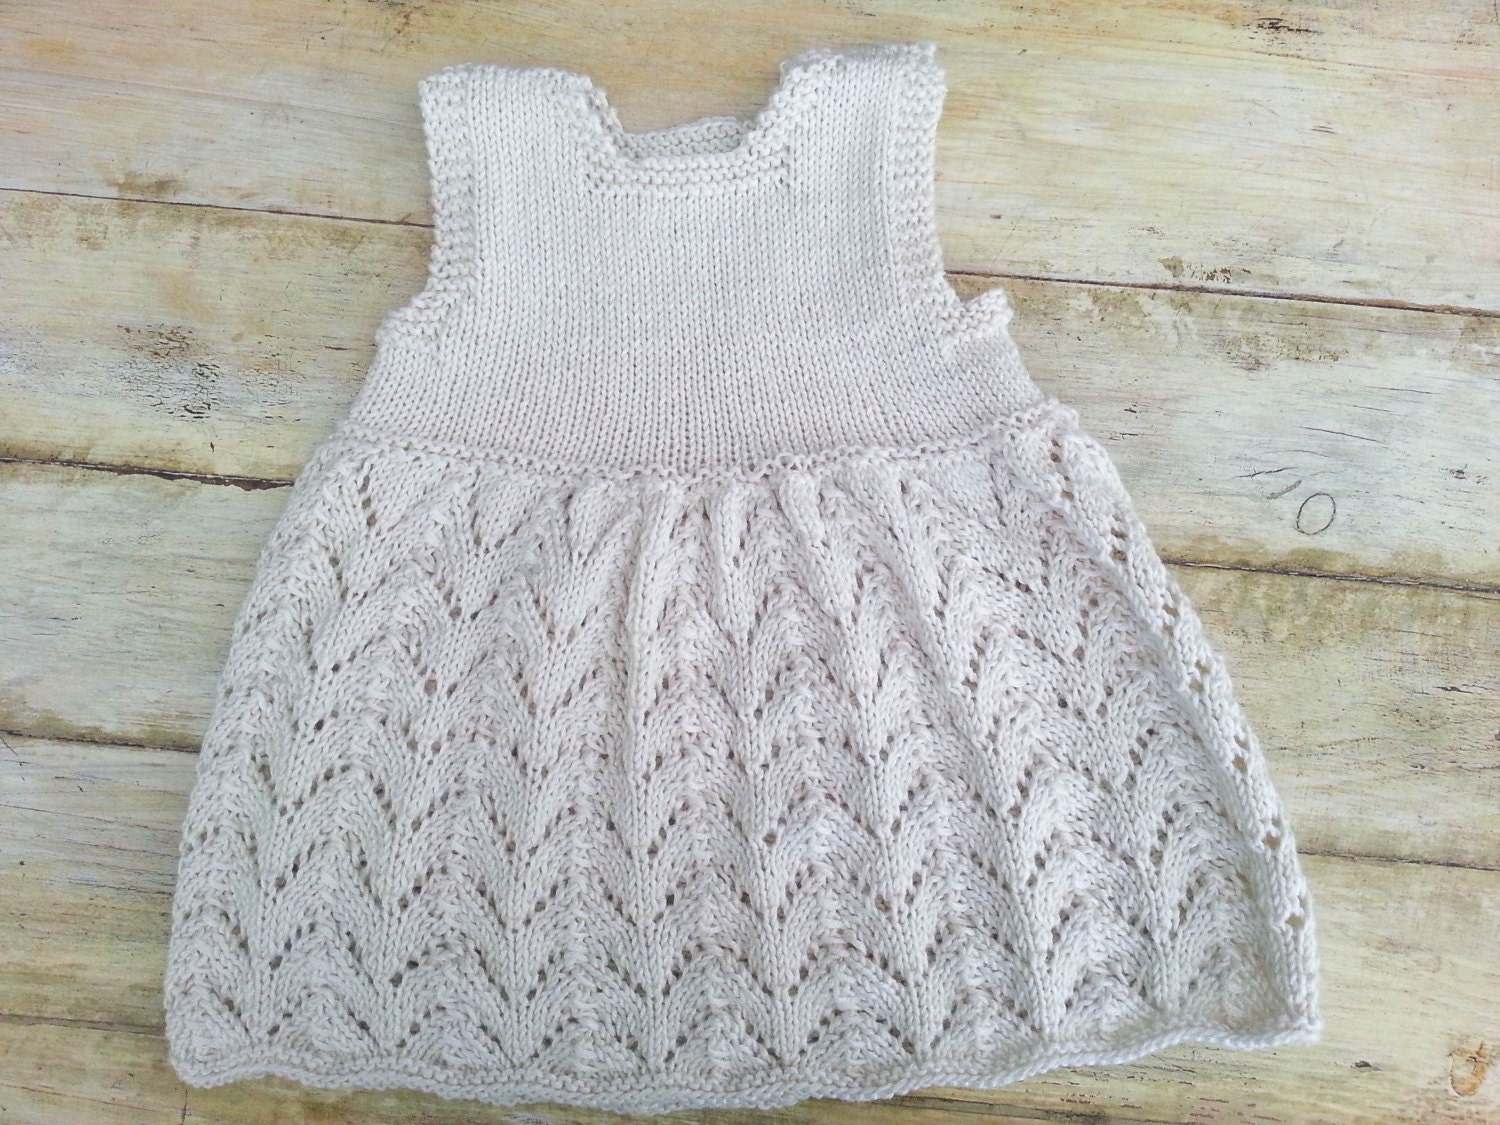 Knitting Pattern Dressing Gown : KNITTING PATTERN Baby Lace Dress Modern Baby Lace Dress